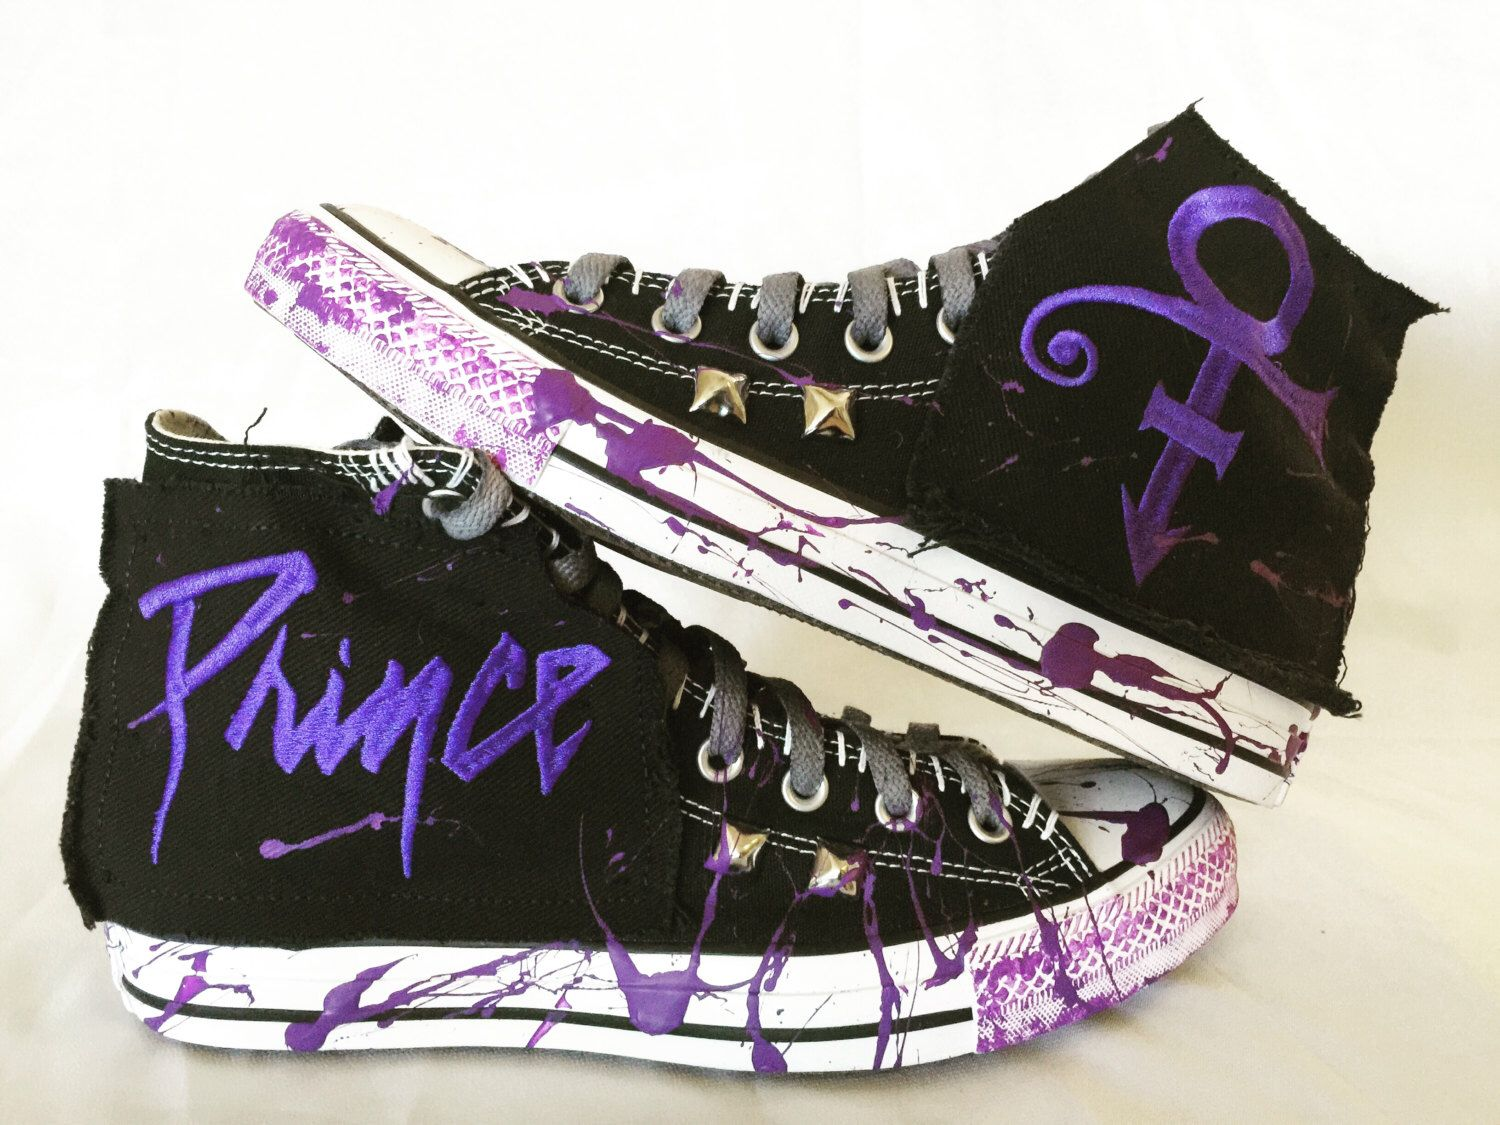 Prince All Star shoes by Chad Cherry by ChadCherryClothing on Etsy https://www.etsy.com/listing/281304220/prince-all-star-shoes-by-chad-cherry